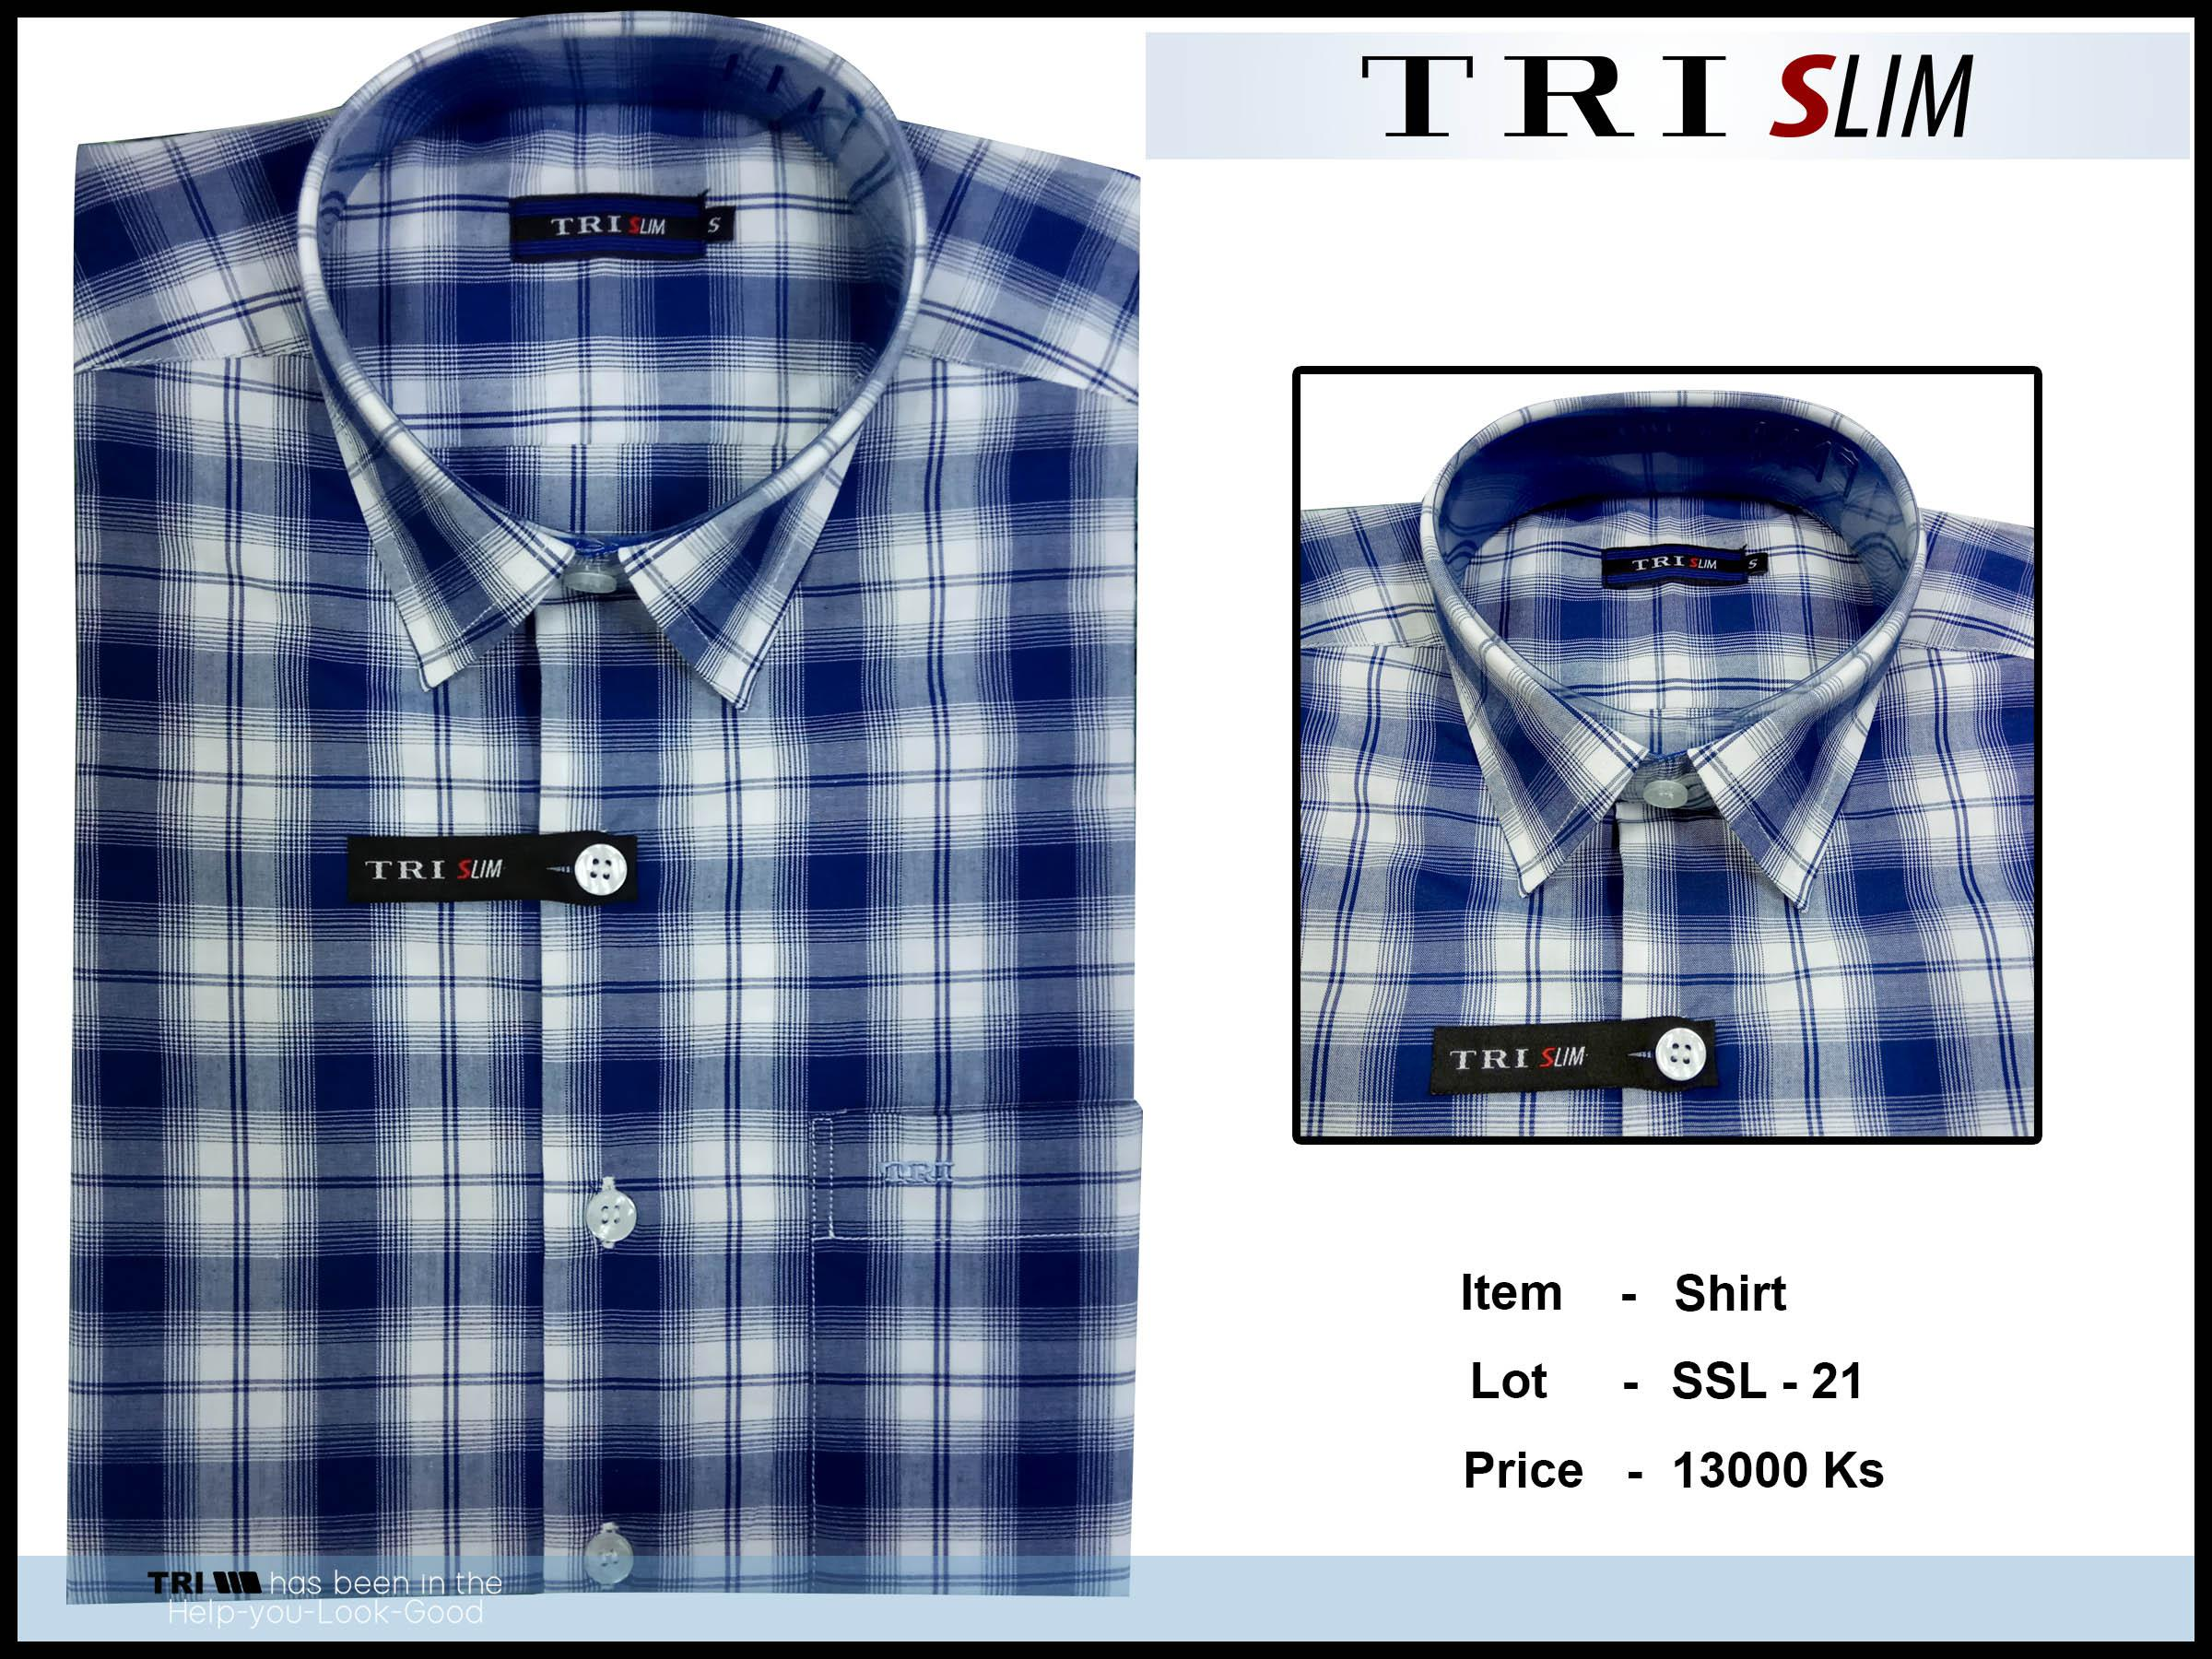 Tri Slim Shirt SSL - 21 - 11